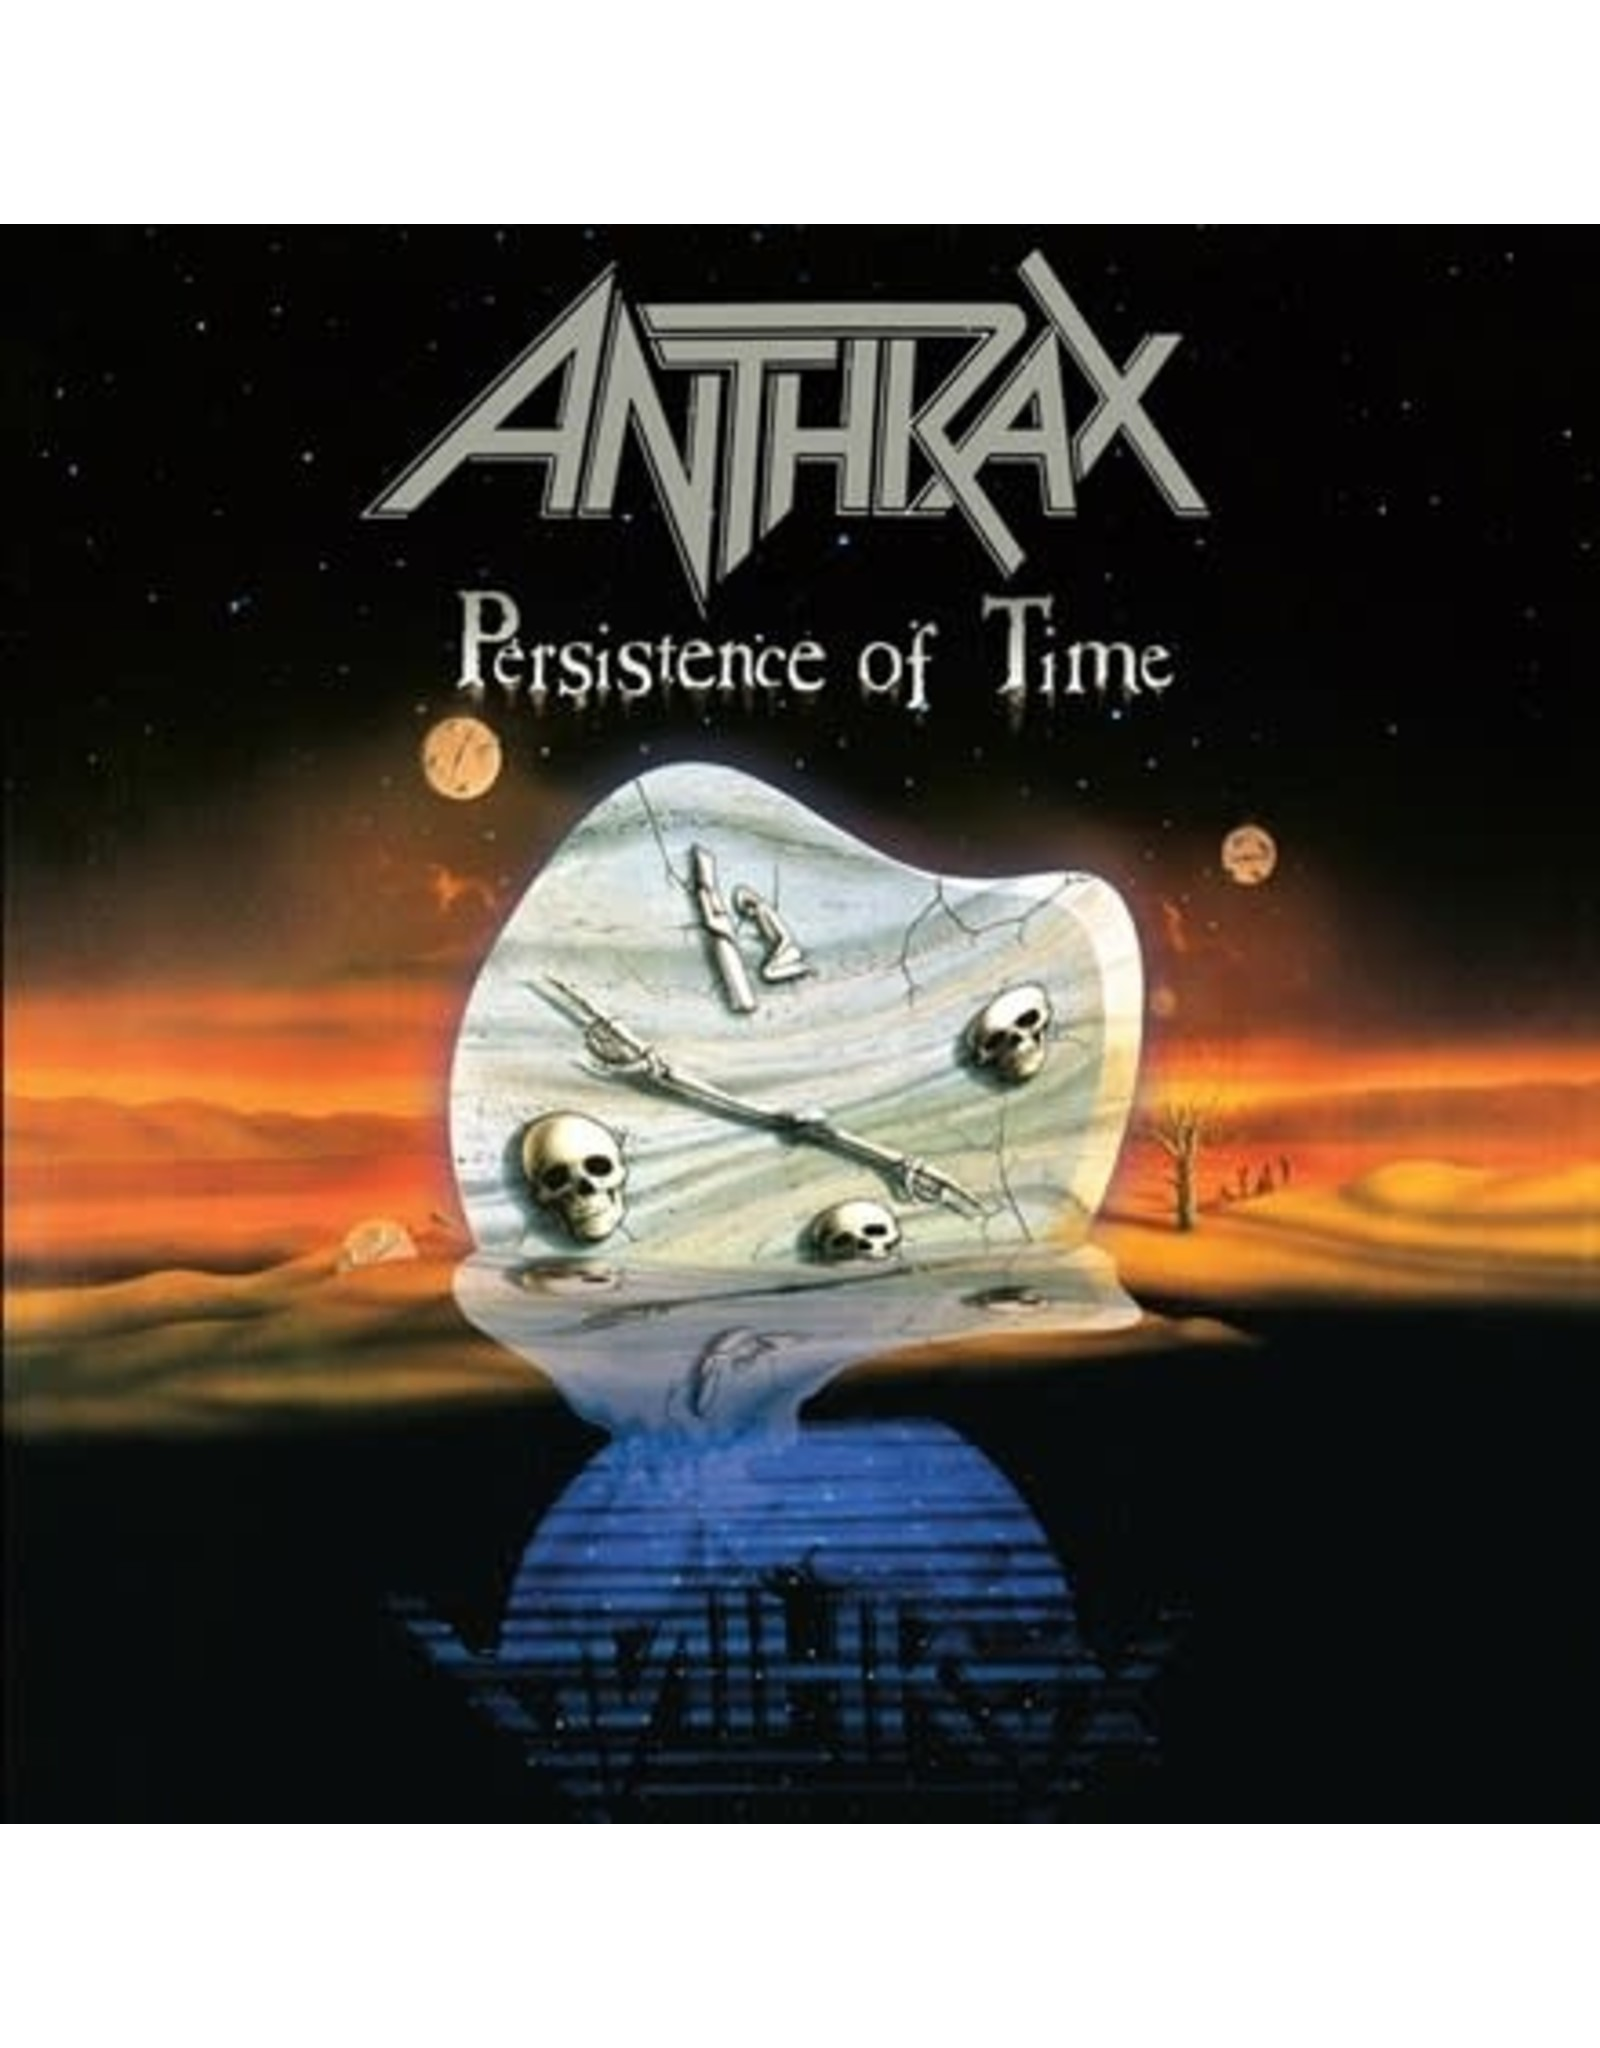 Megaforce Anthrax: Persistence of Time LP